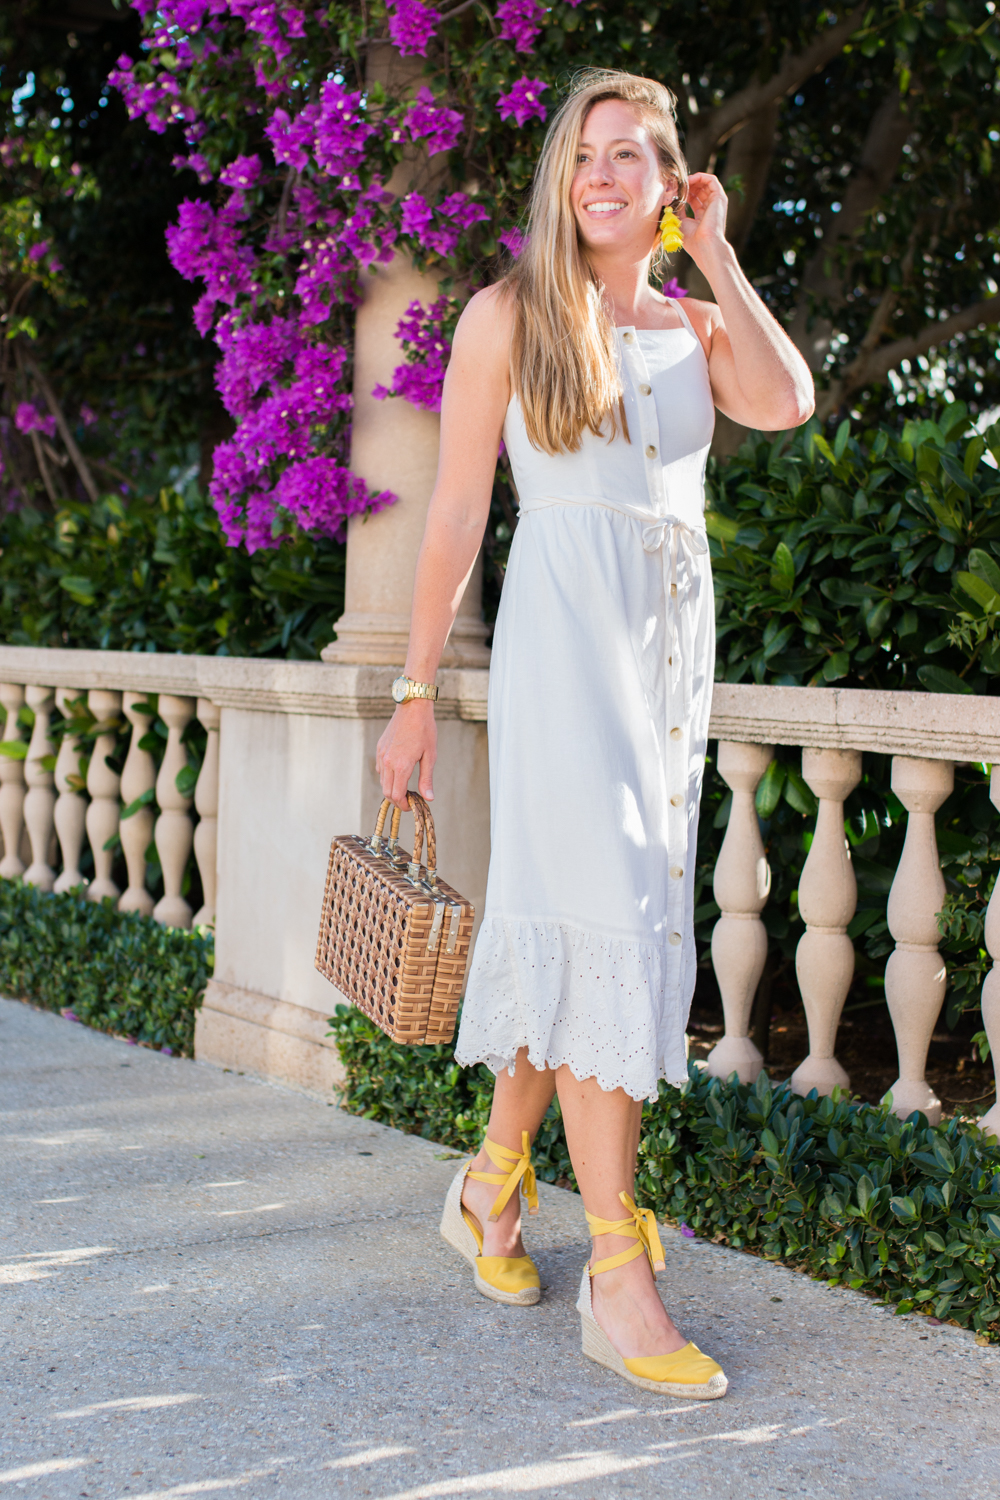 White Button Front Midi Dress for Summer | White Summer Dresses | How to Style a Midi Dress | What to Wear on a Beach Vacation | Warm-Weather Style | West Palm Beach, Florida - Sunshine Style